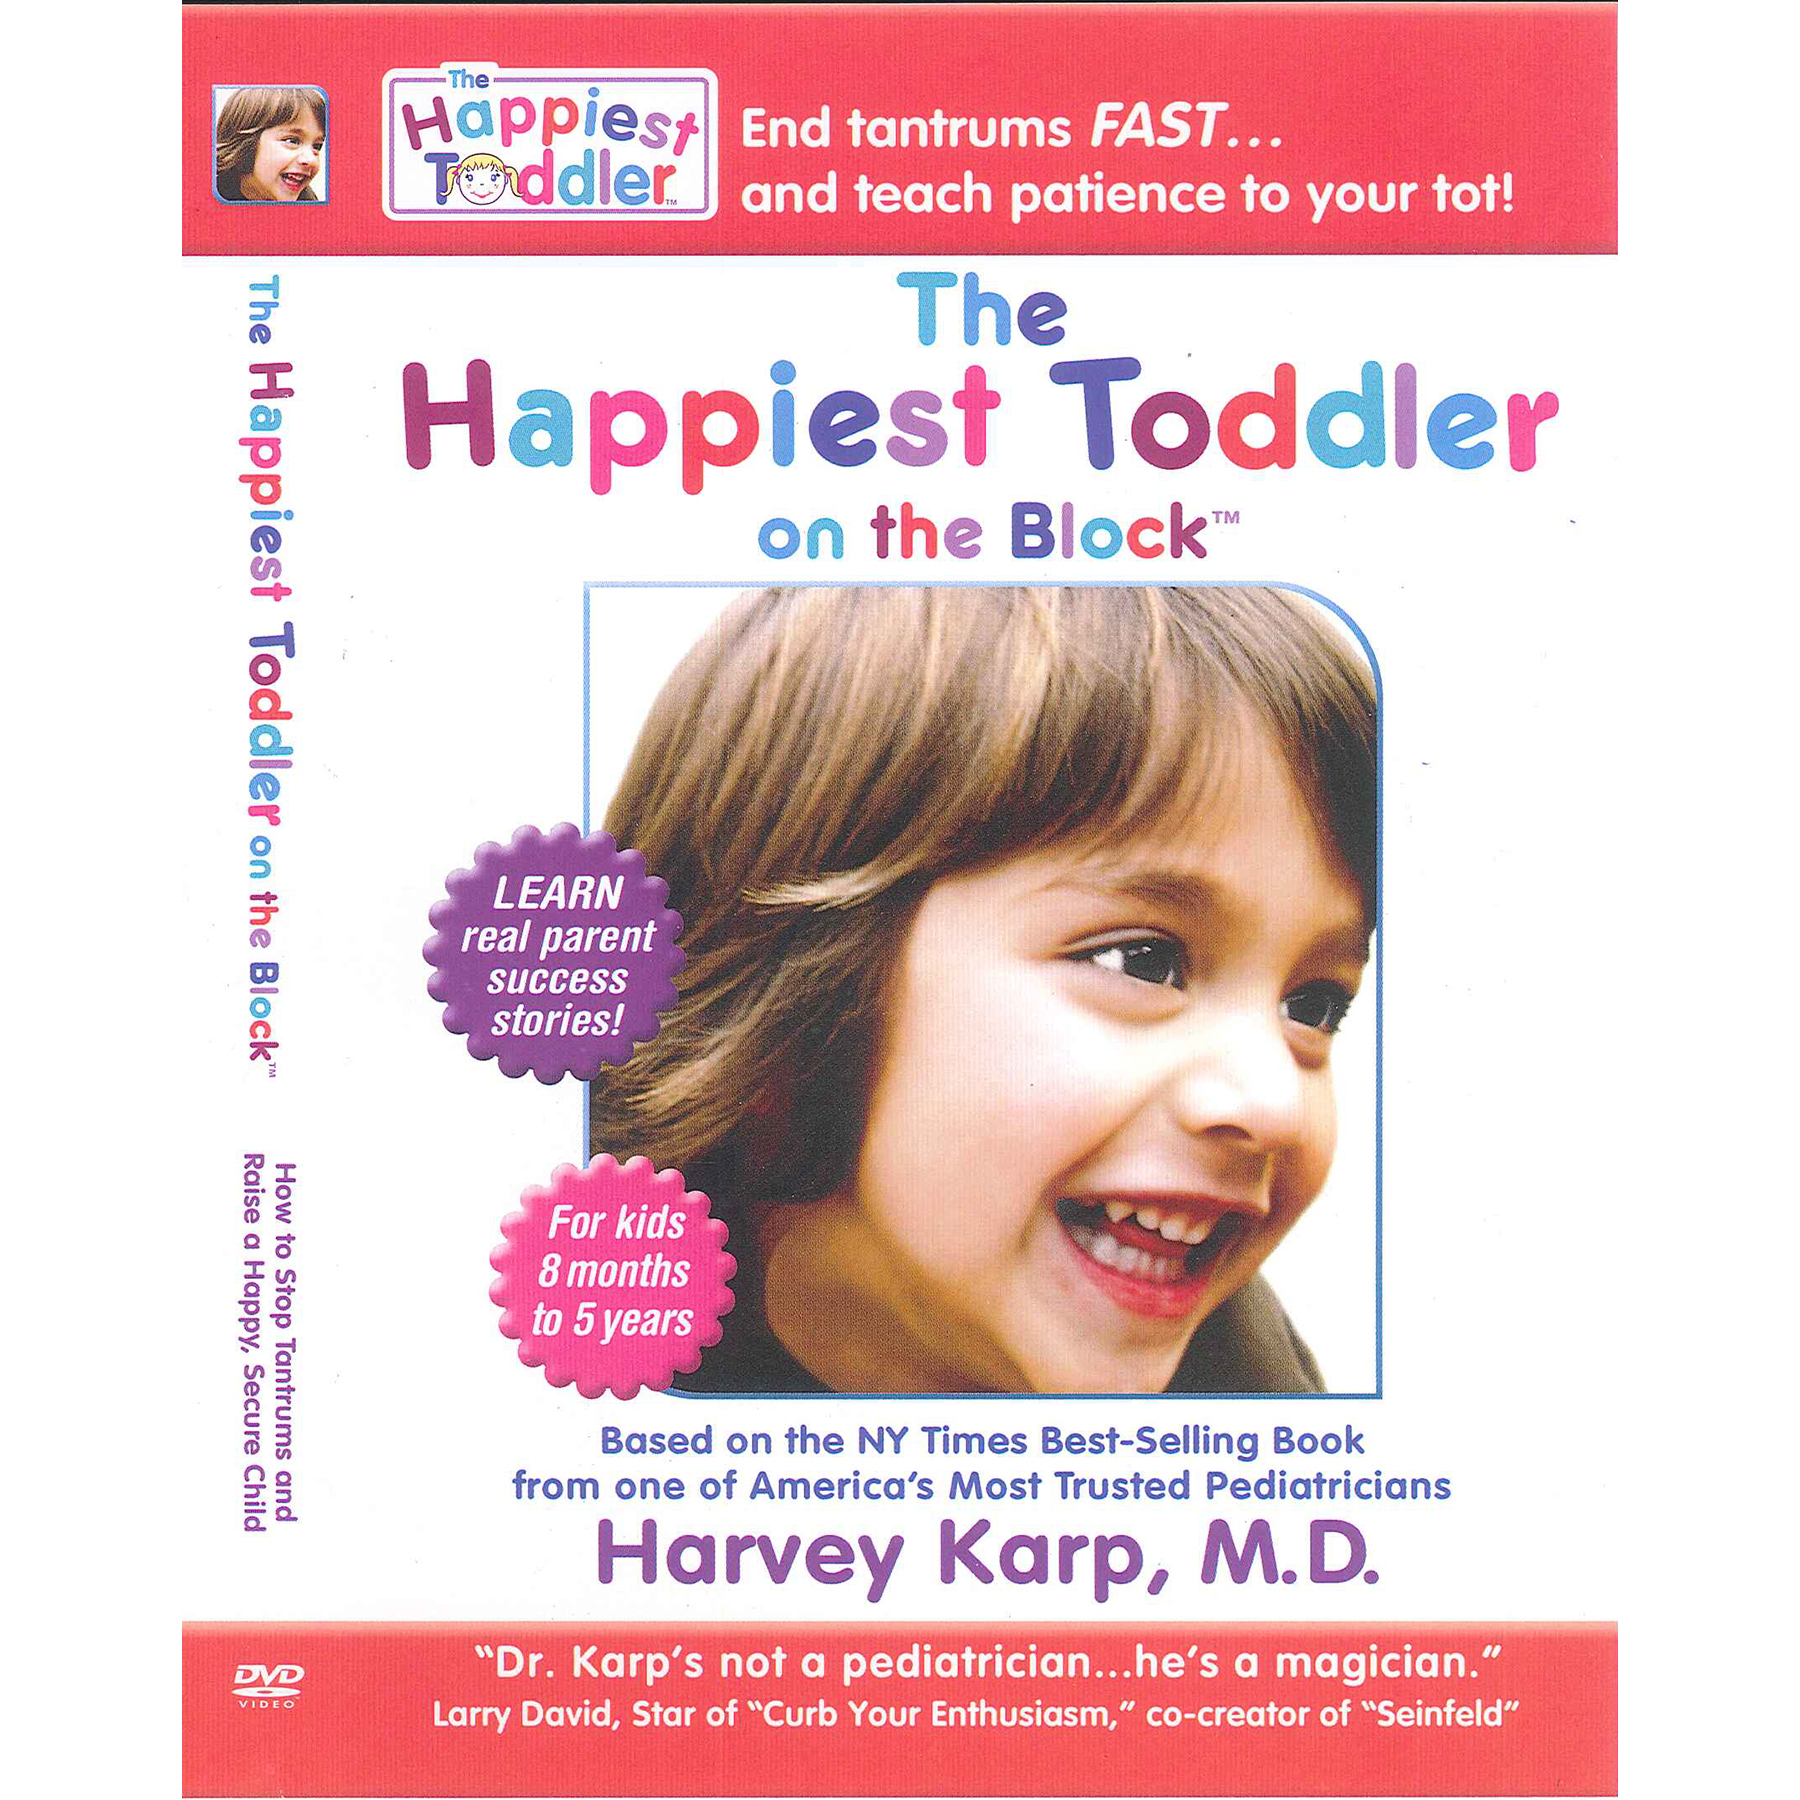 Happiest Toddler on the Block DVD cover image, improving toddler behavior with Harvey Karp, Health Edco, 42266